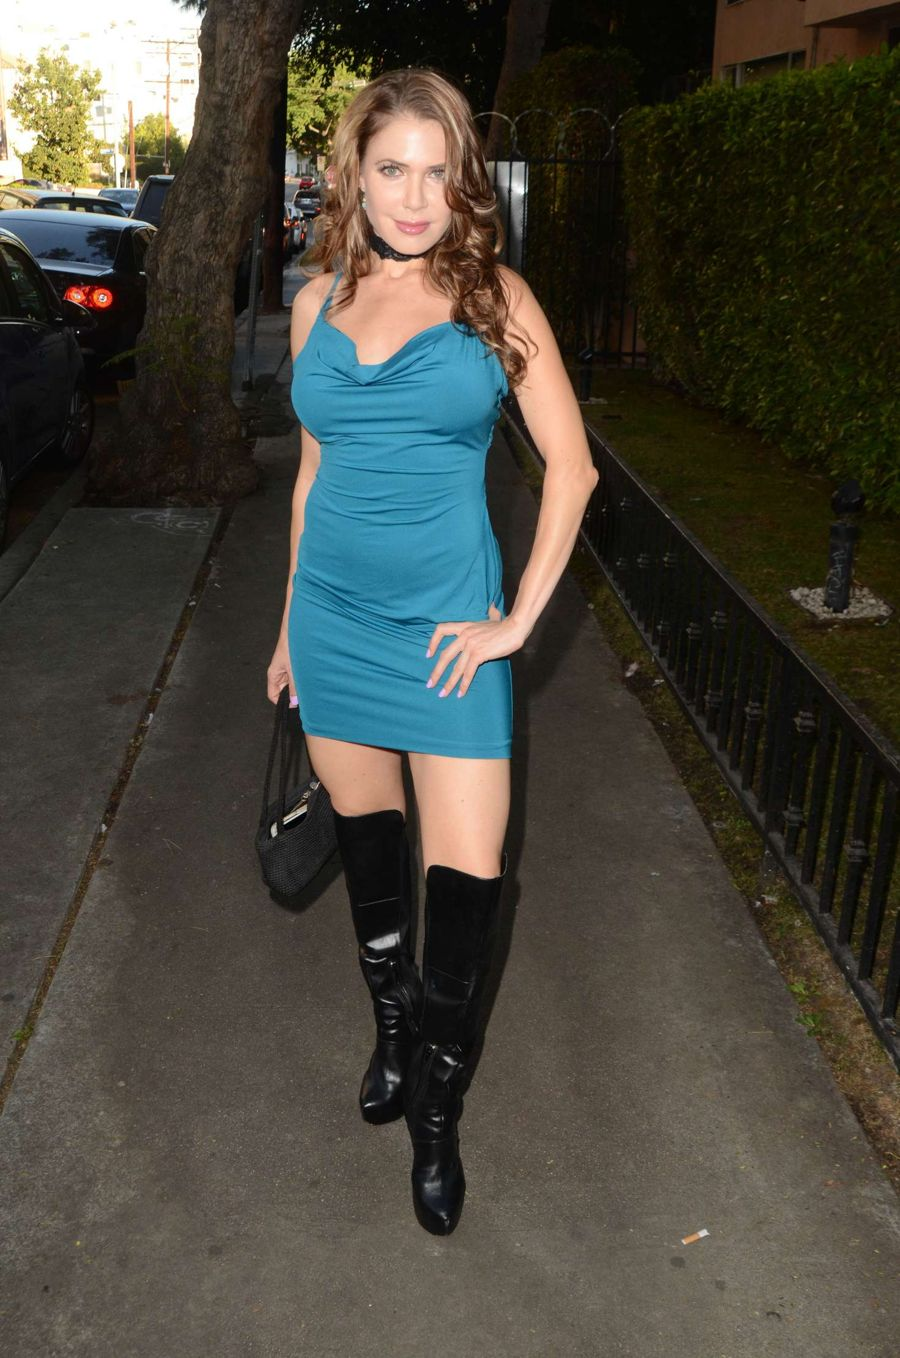 Especialmente Poner a prueba o probar Miedo a morir  Erika Jordan in Tight Blue Dress in Hollywood | Hollywood Celebs |  Fropky.com